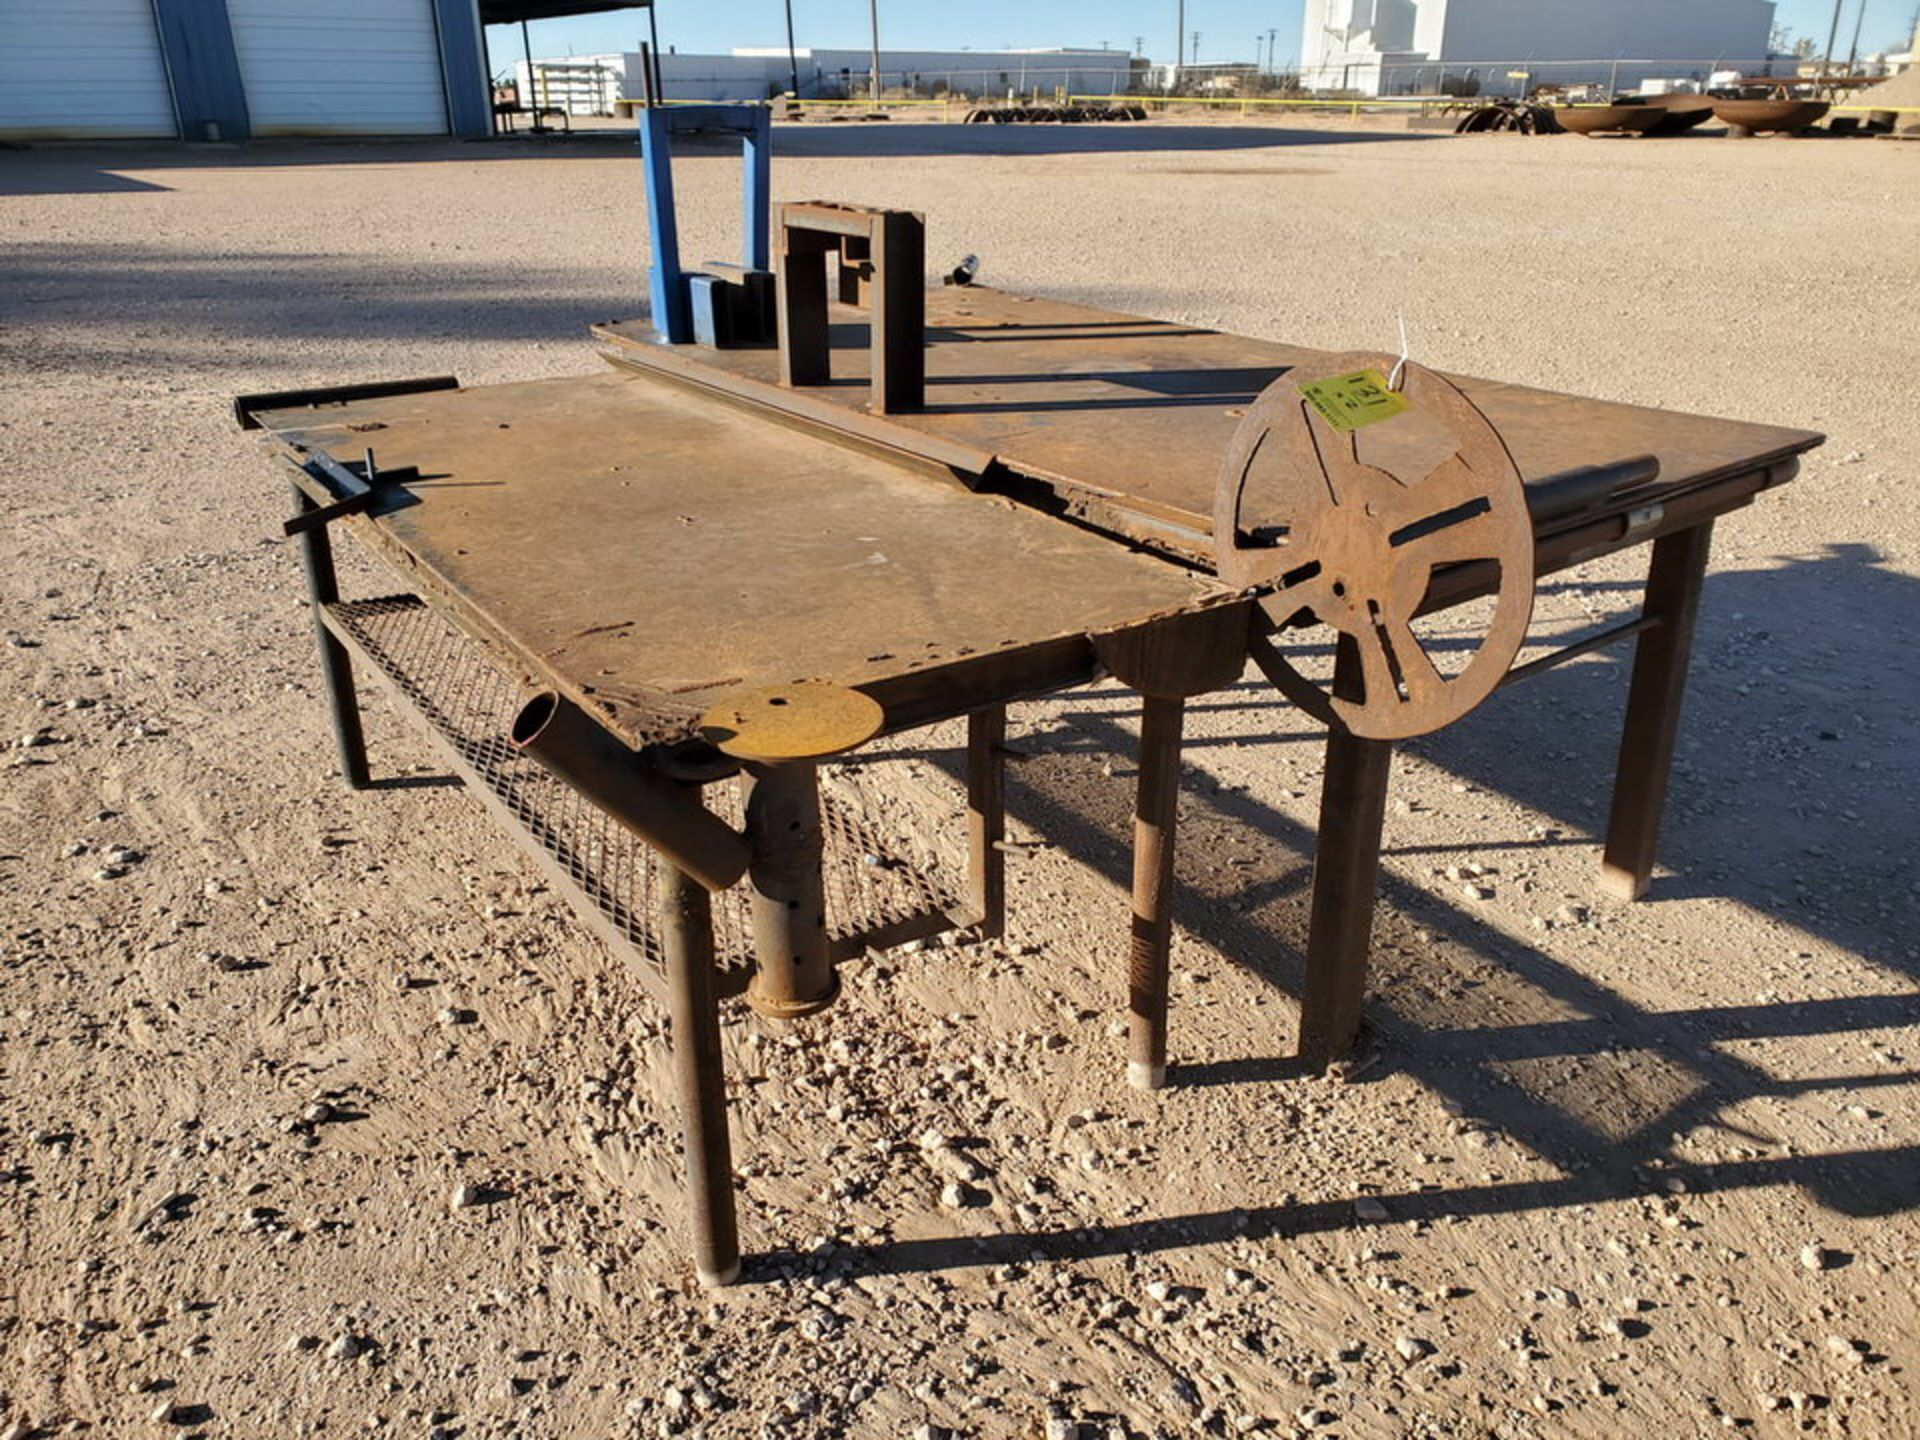 "(2) Stl Welding Tables (1) 48-1/2"" x 96"" x 37""H; (1) 37"" x 78"" x 34-1/2""H"